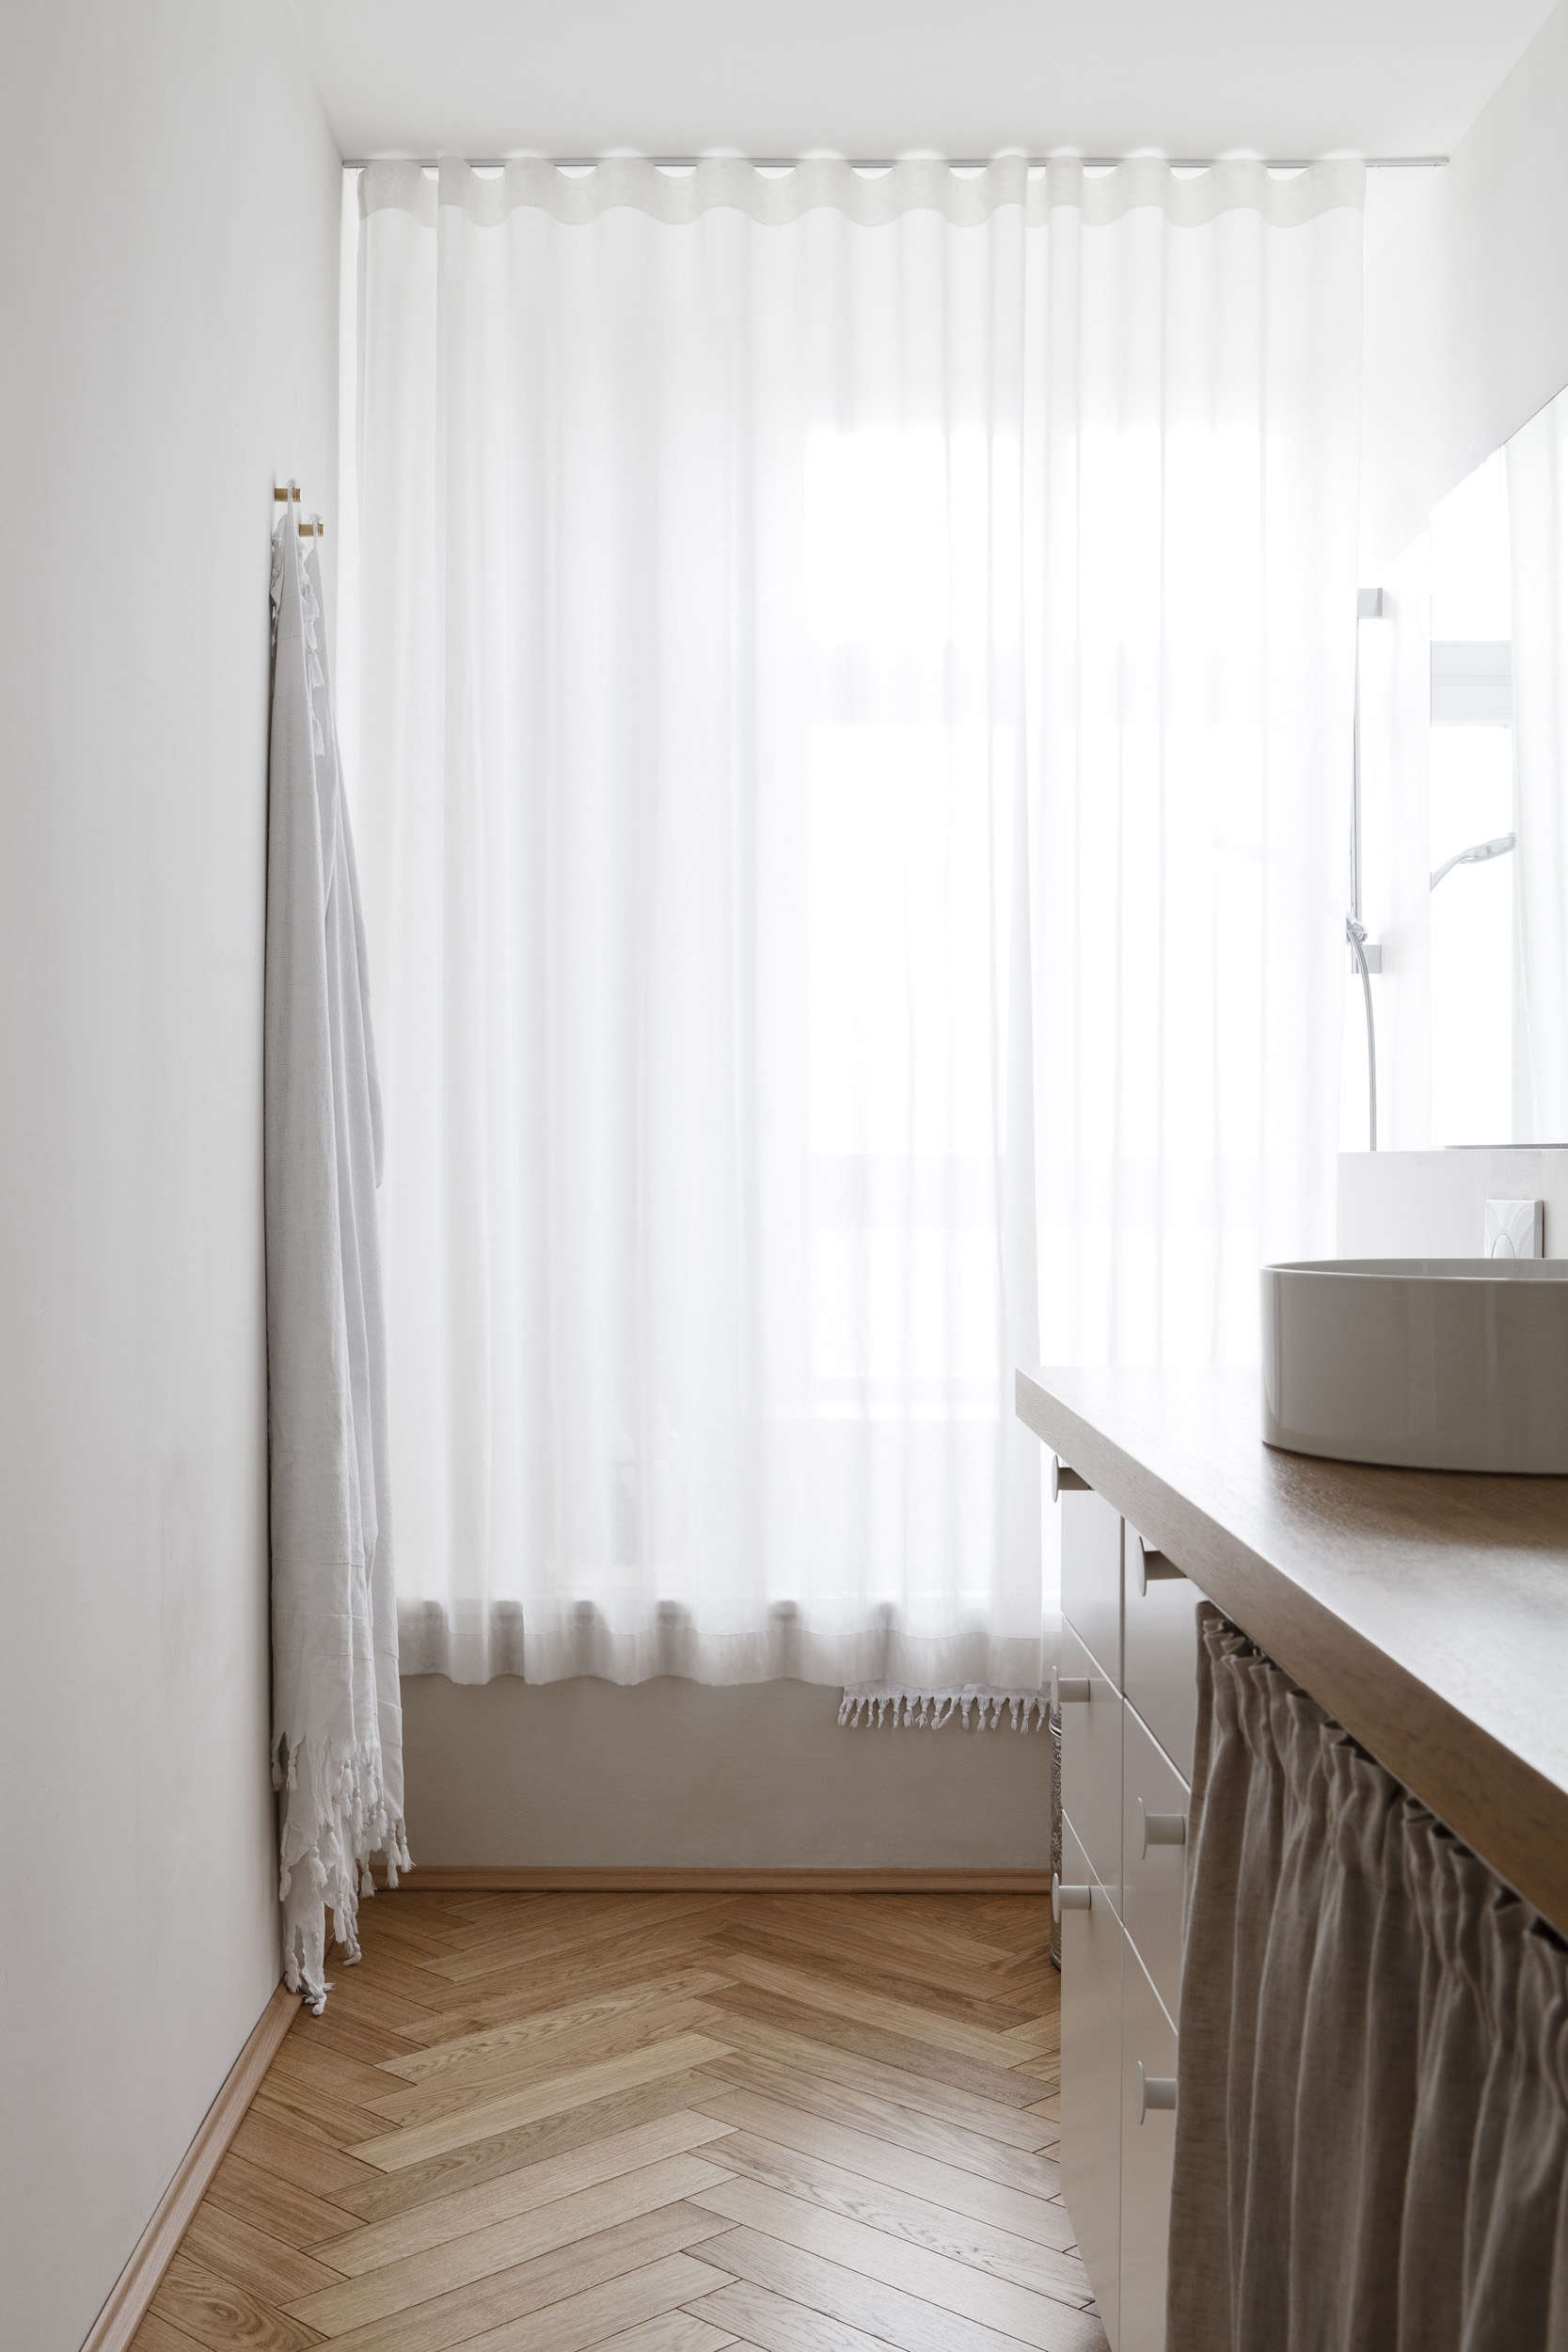 Luxe-minimalist small master bathroom in an apartment remodel by Studio Oink in Mainz, Germany | Remodelista